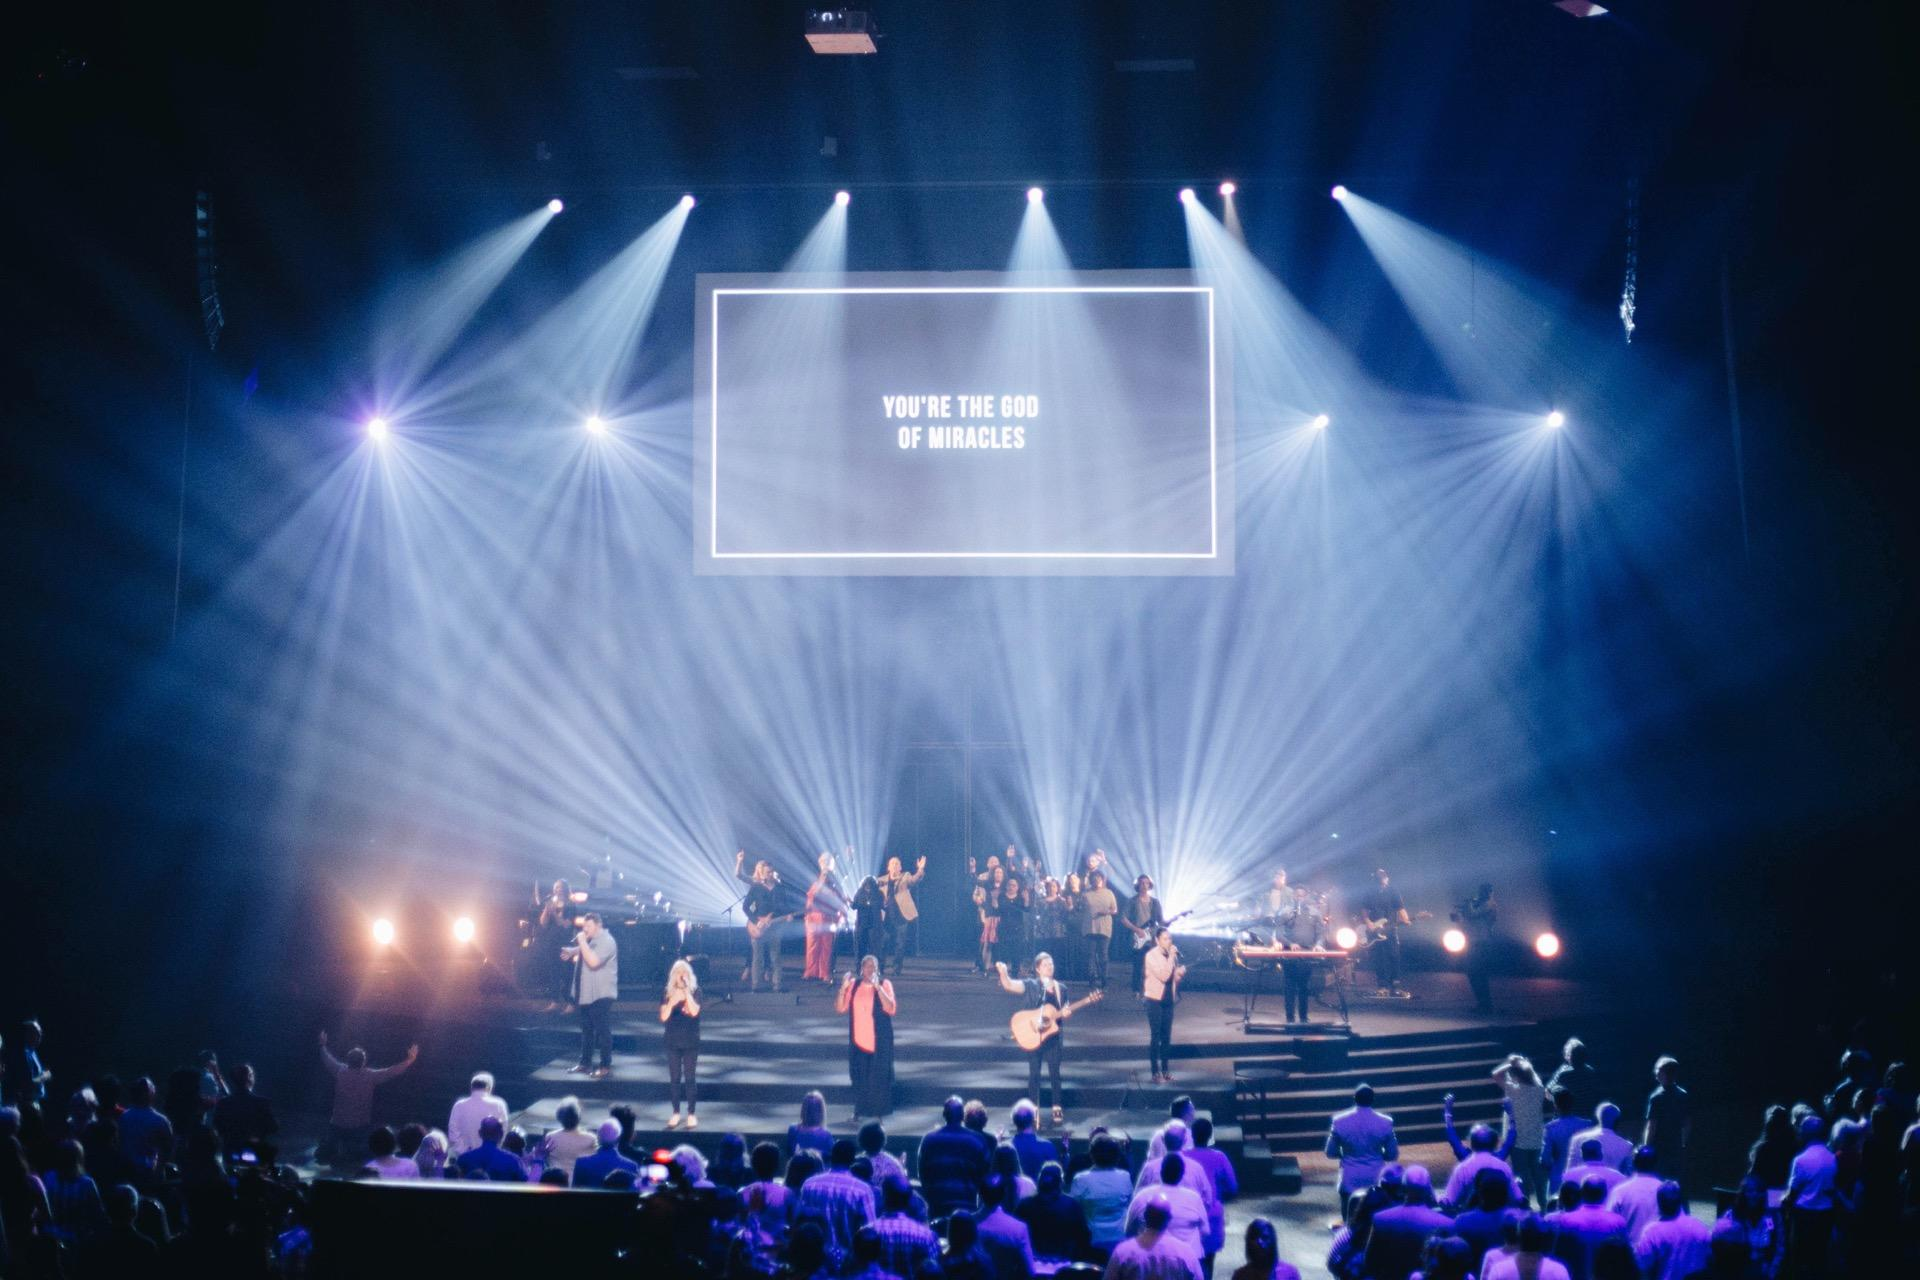 Victory Church image 2